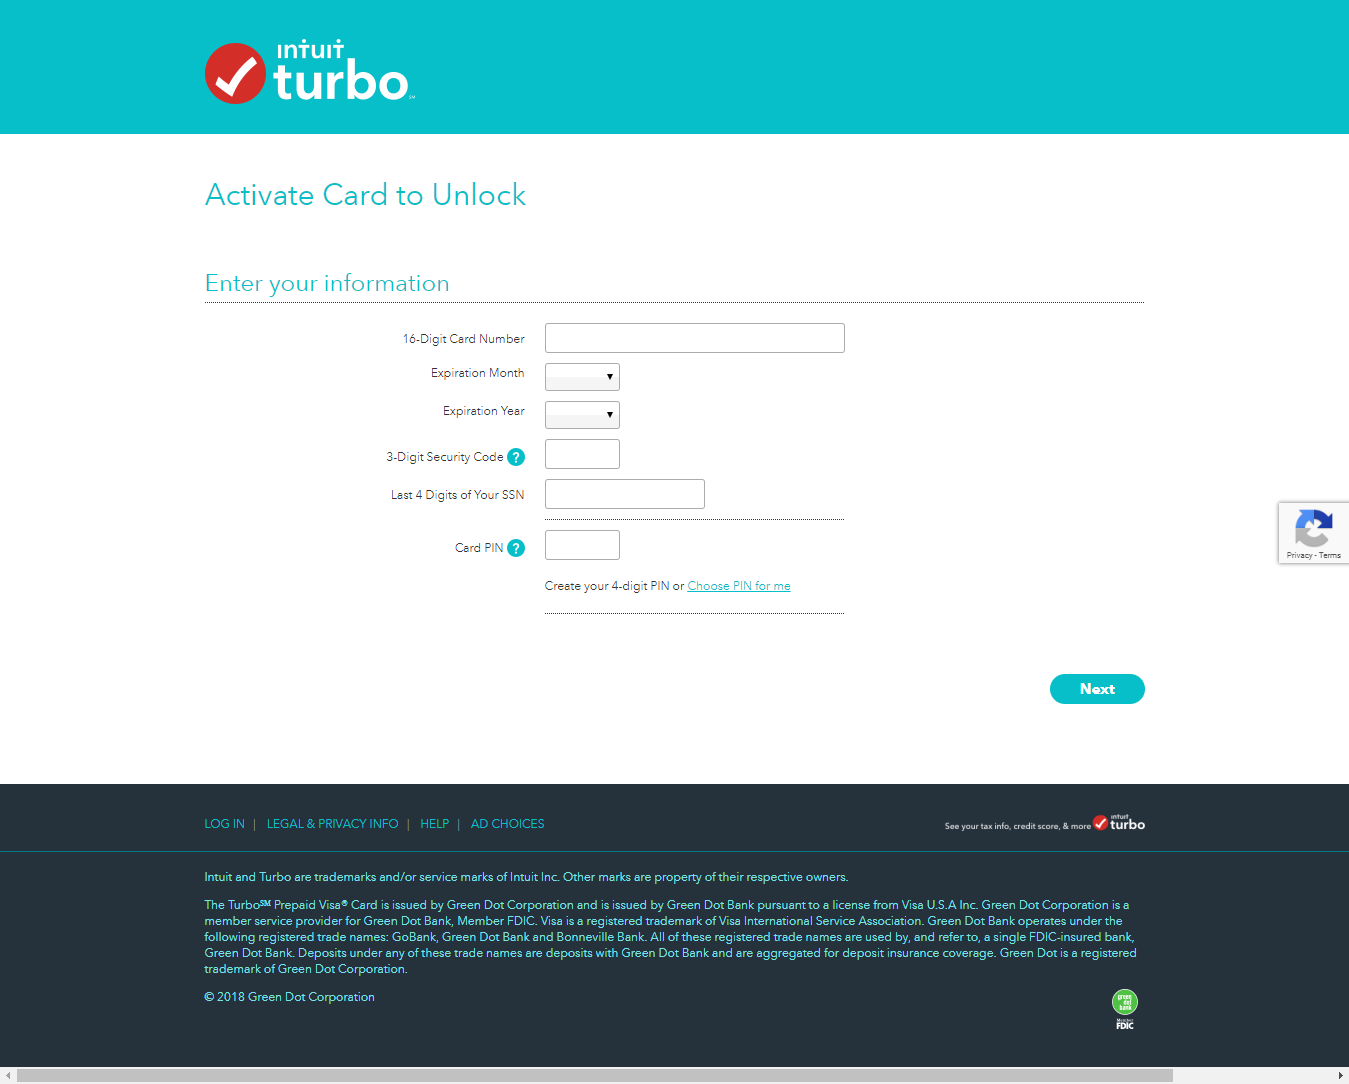 Activate Your Turbo Prepaid Card